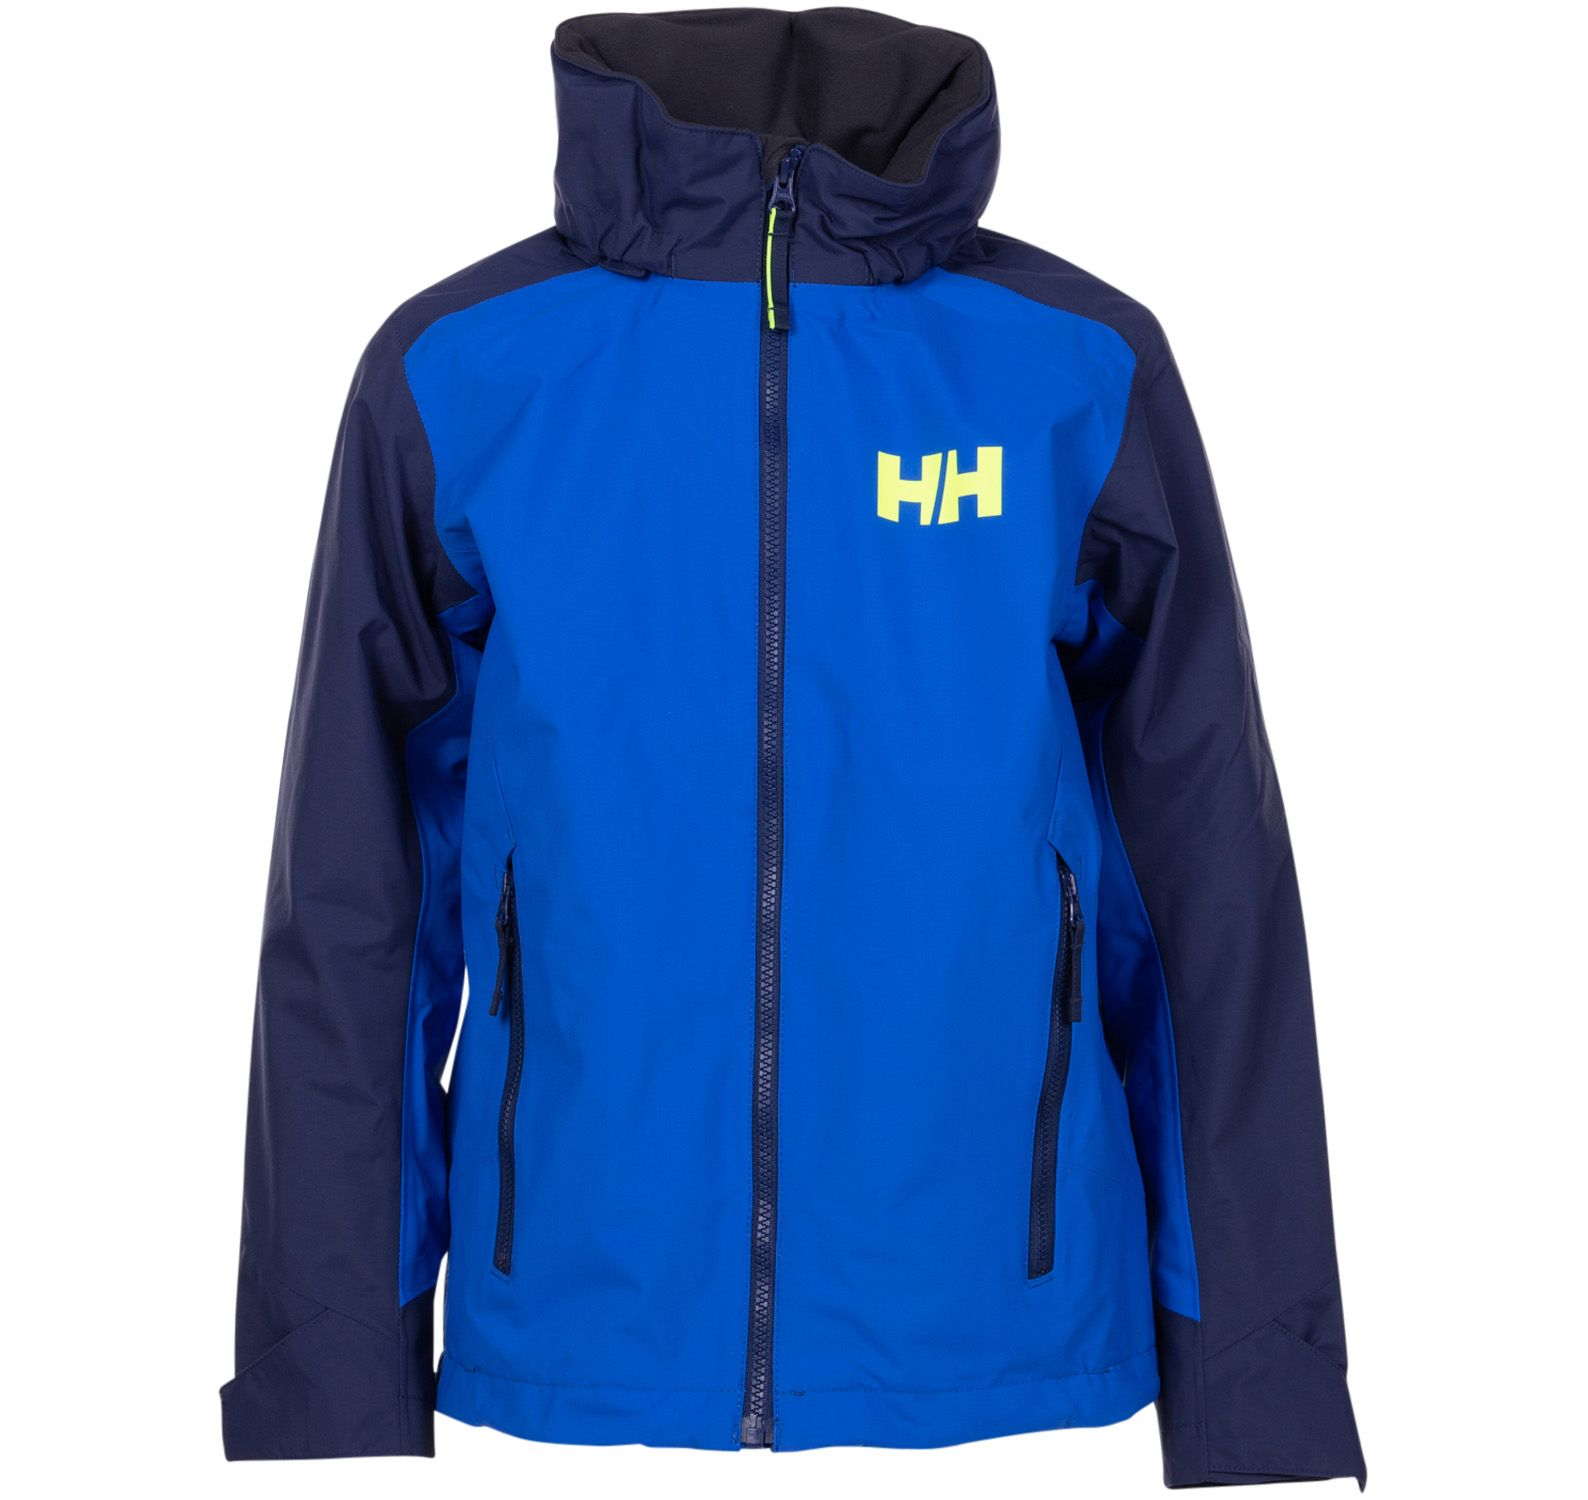 JR RIDGE JACKET, 563 OLYMPIAN BLUE, 140